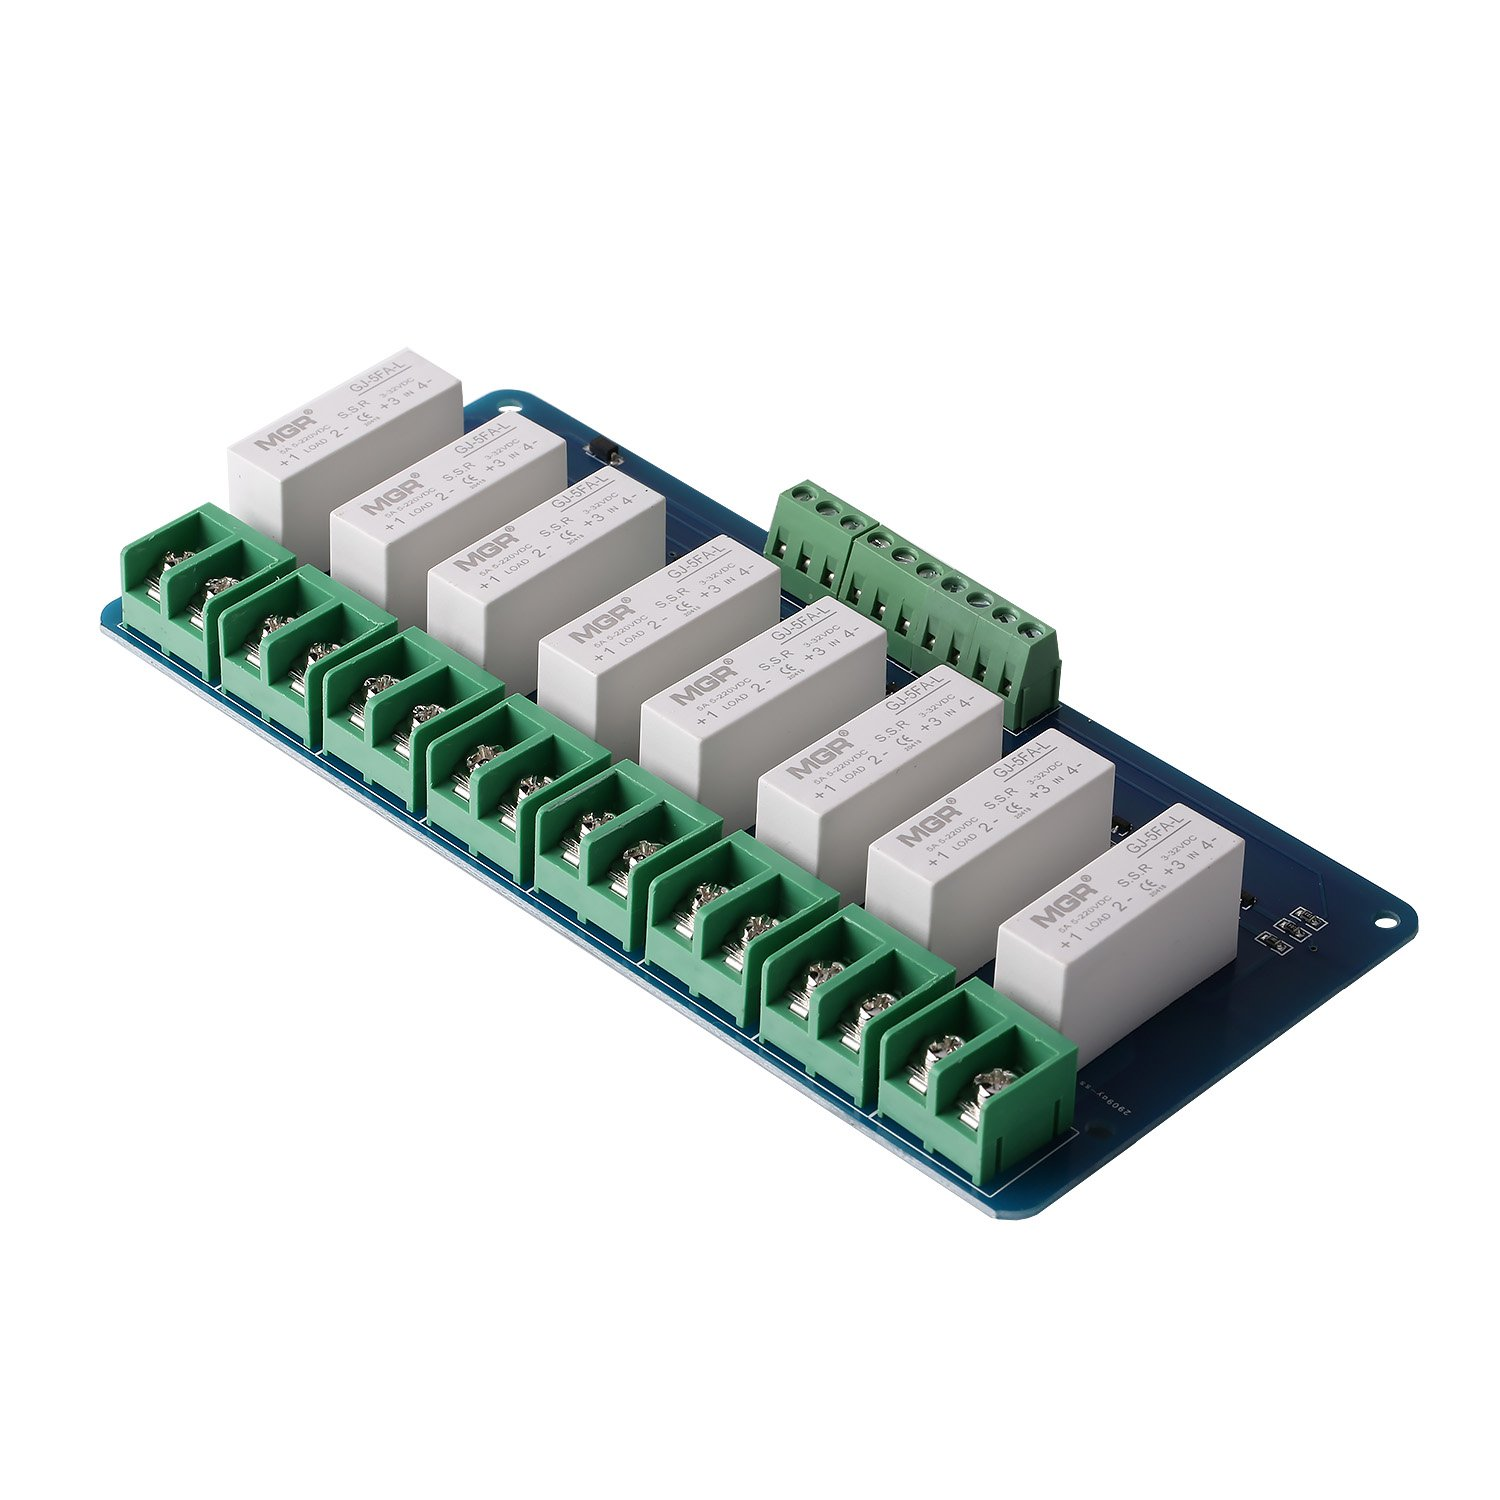 Sainsmart 8 Ch Ssr 5a Dc 5v 220v Solid State Relay Small Wiring Diagram Computers Accessories